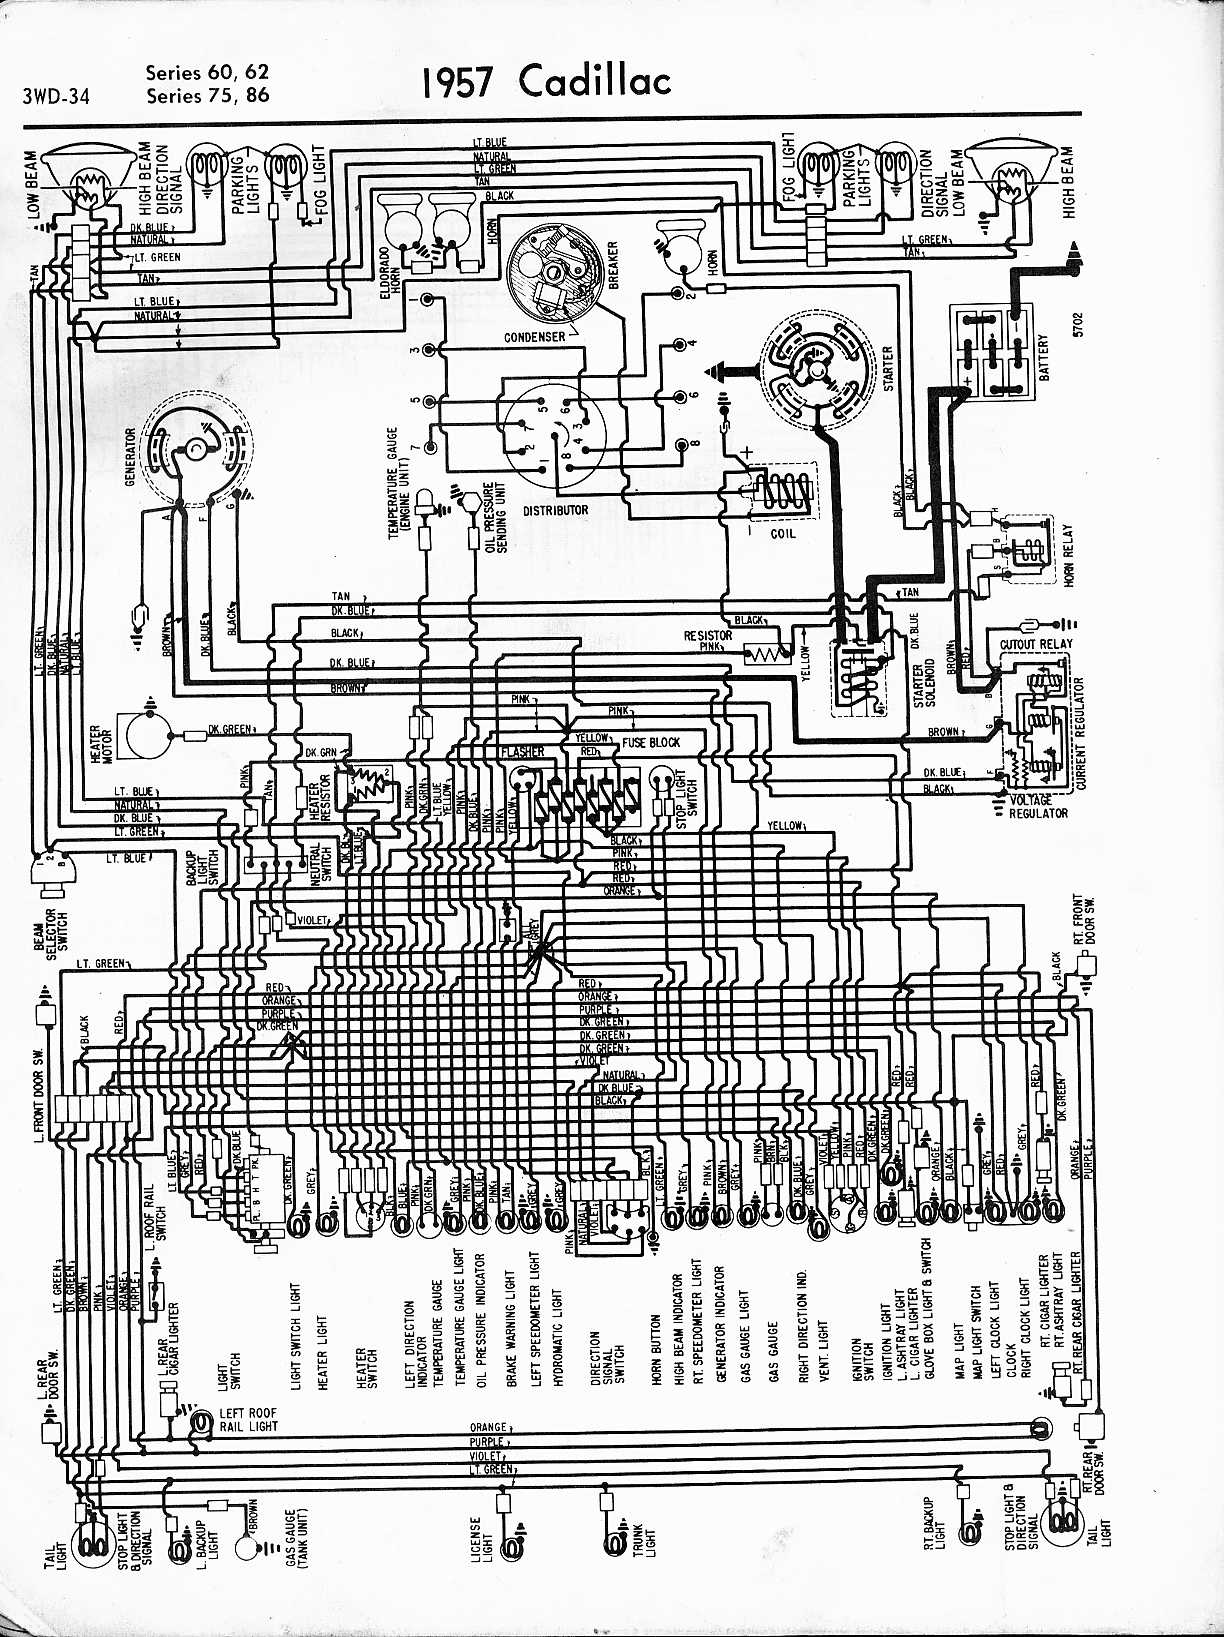 hight resolution of 1969 cadillac wiring diagram wiring diagram list 1969 cadillac wiring diagram 1969 cadillac wiring diagram